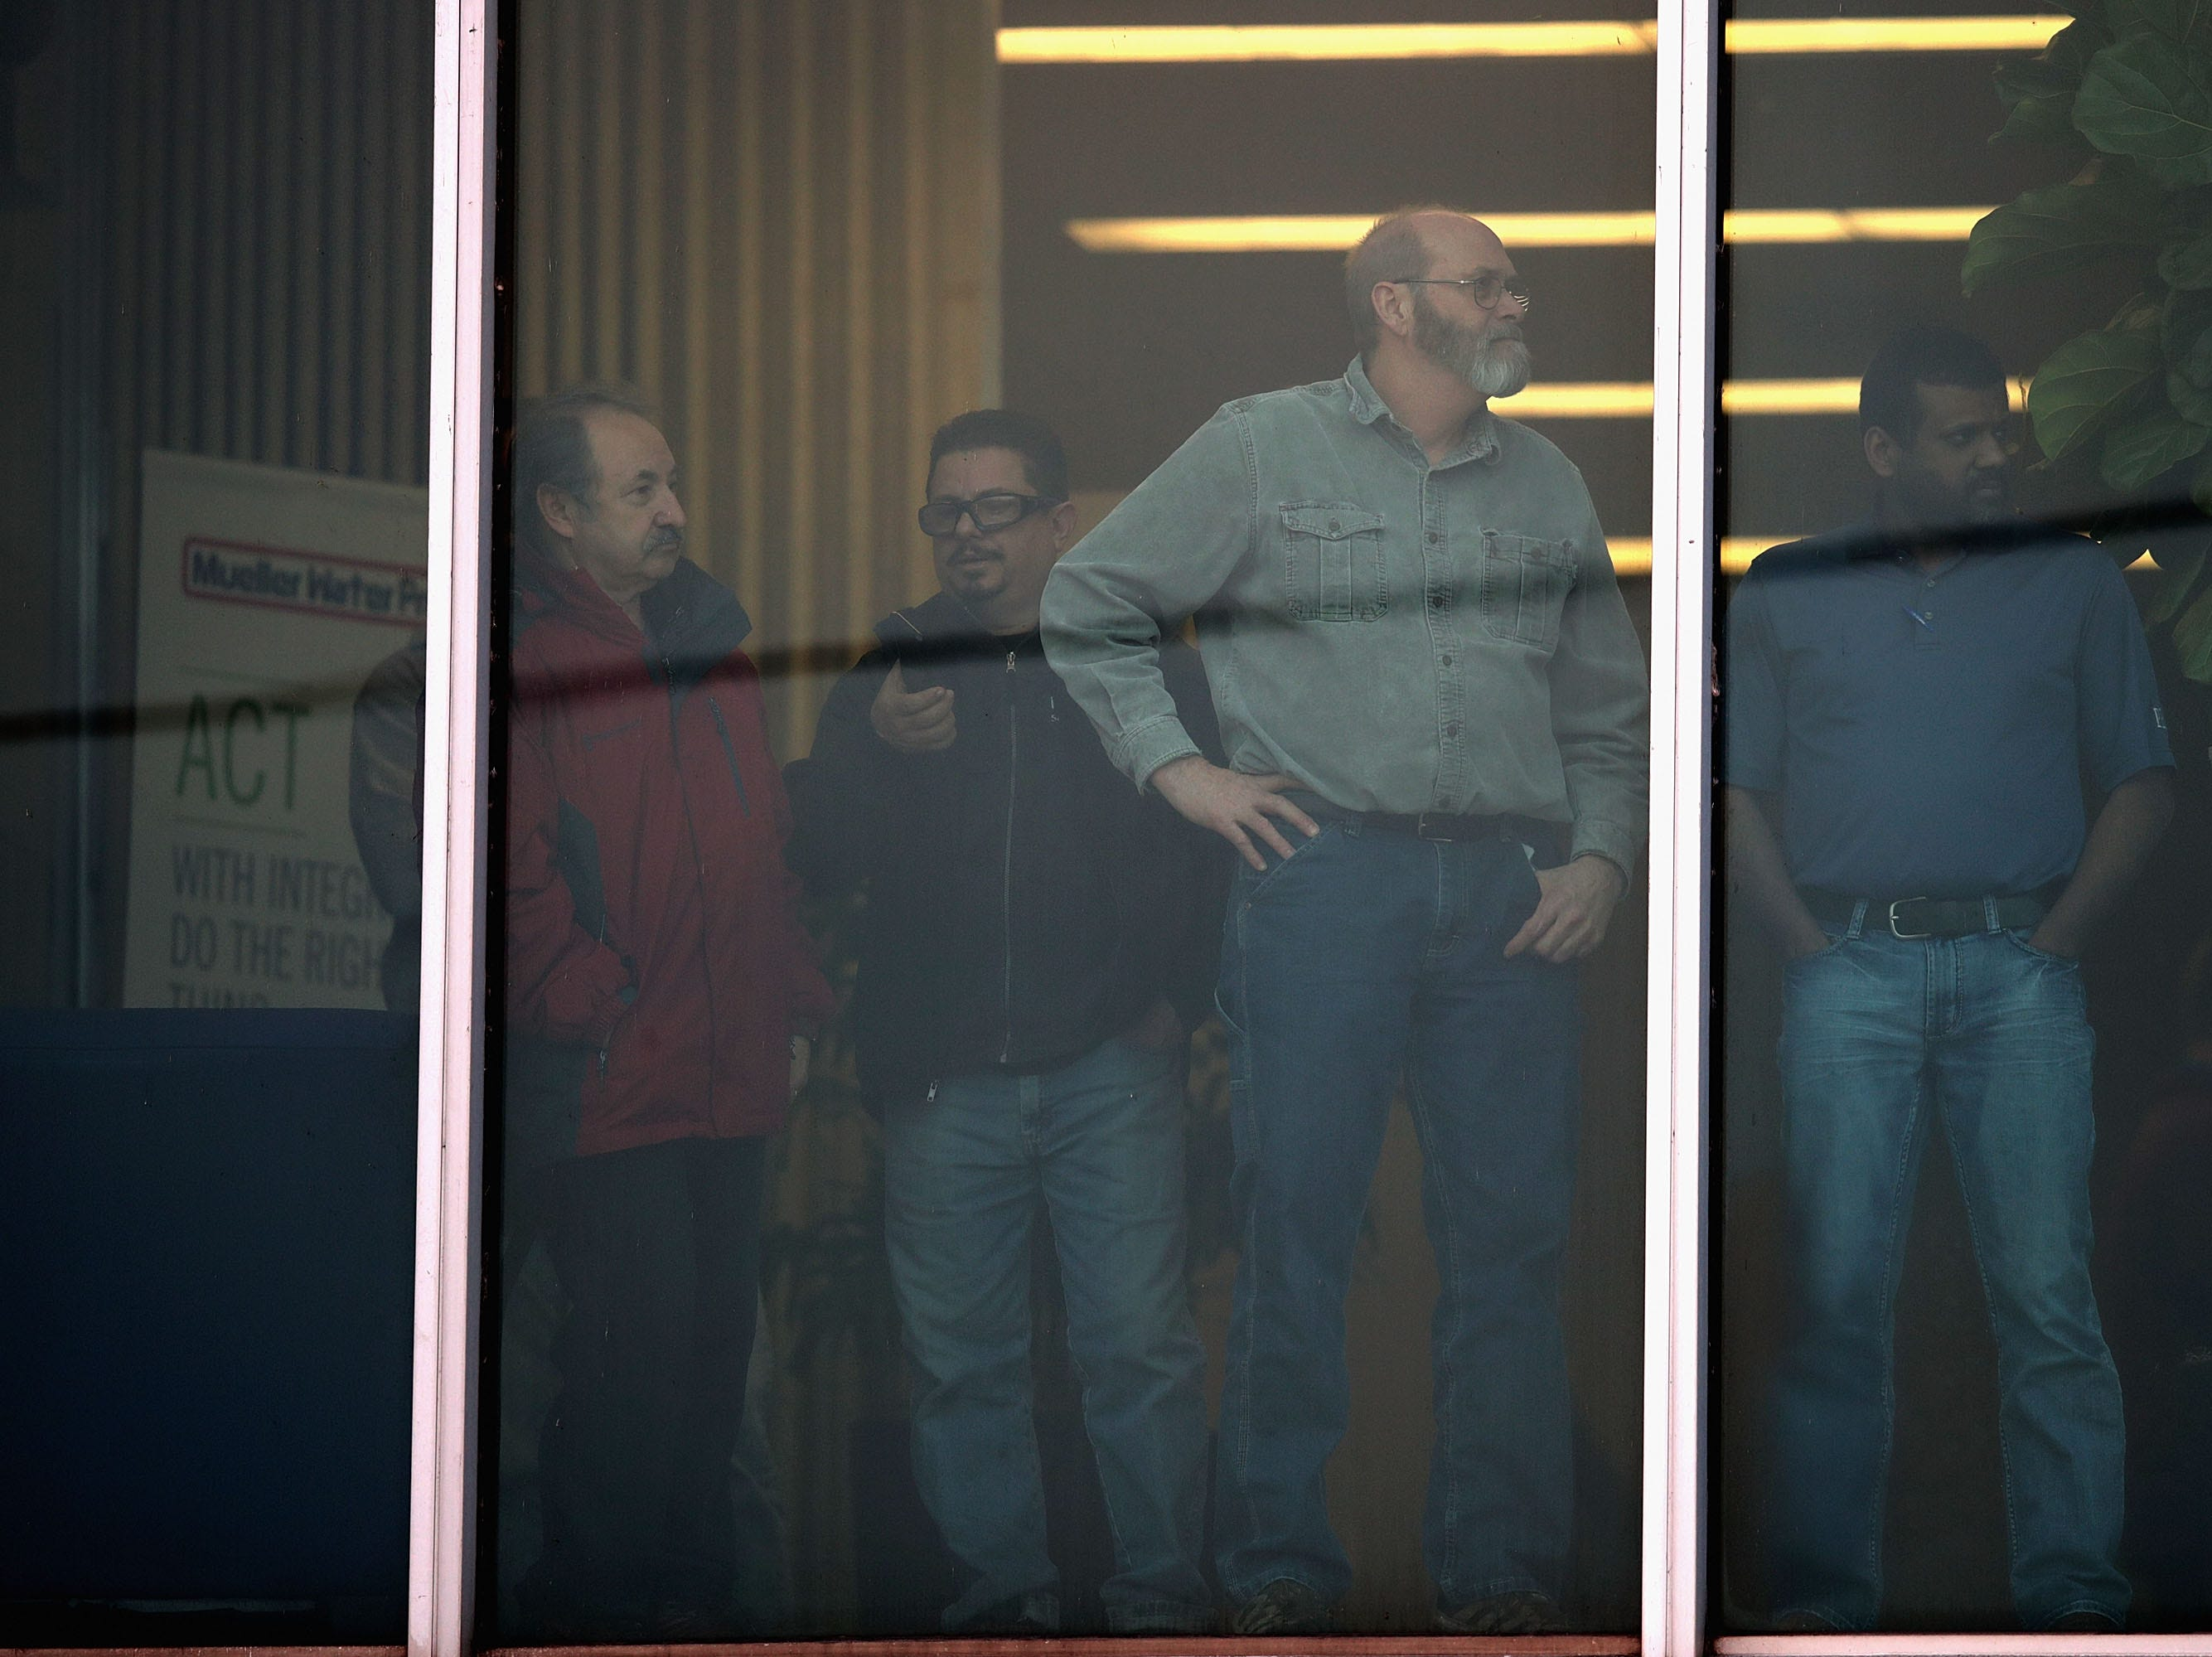 Workers look out an office window following a shooting at the Henry Pratt Company on February 15, 2019 in Aurora, Illinois.